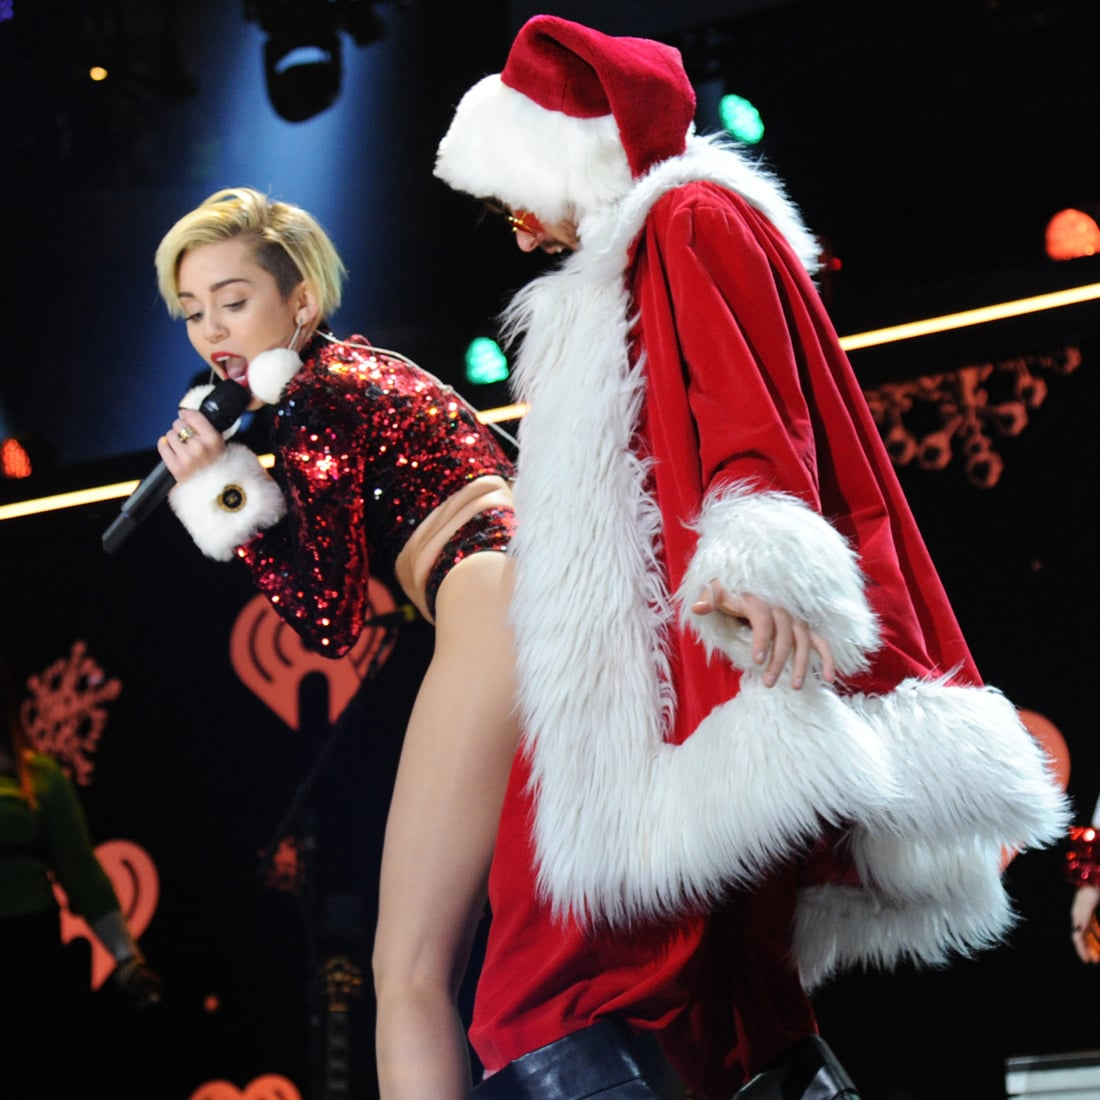 miley cyrus twerked with a christmas tree clad amazon ashley on the miley cyrus at the z100 iheartradio jingle ball in nyc popsugar celebrity photo 16 - Miley Cyrus Christmas